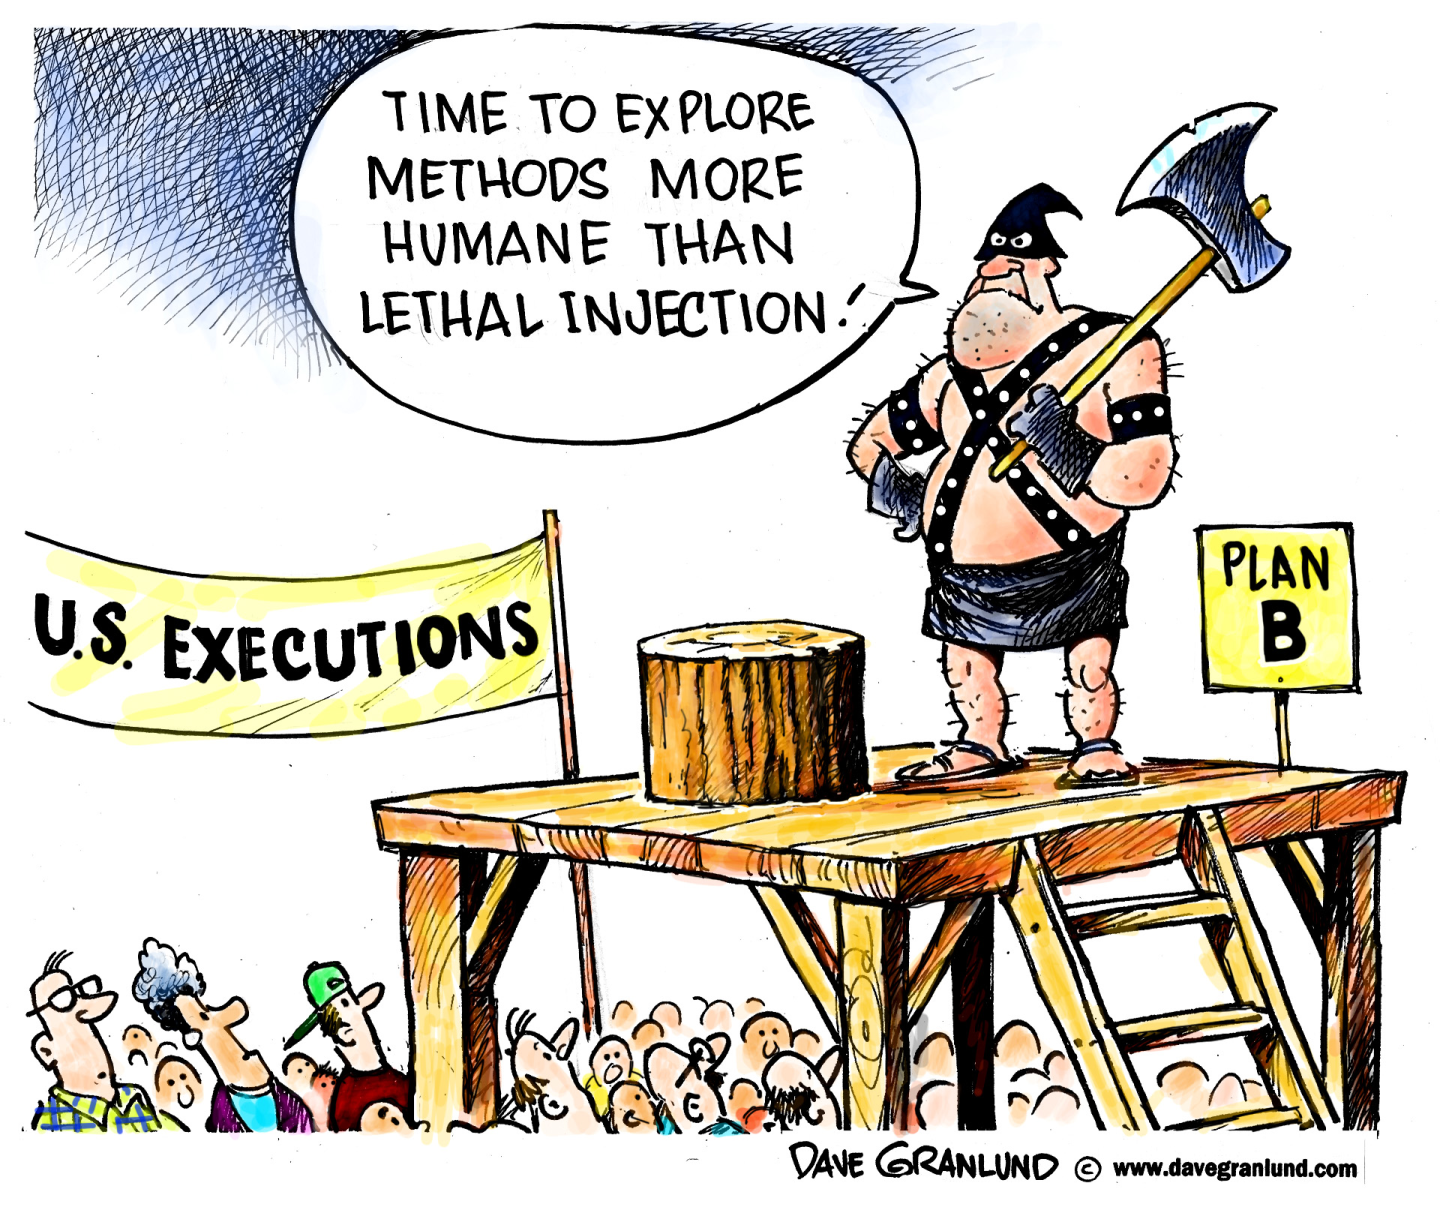 Systemic racism in Republican policies for executions.